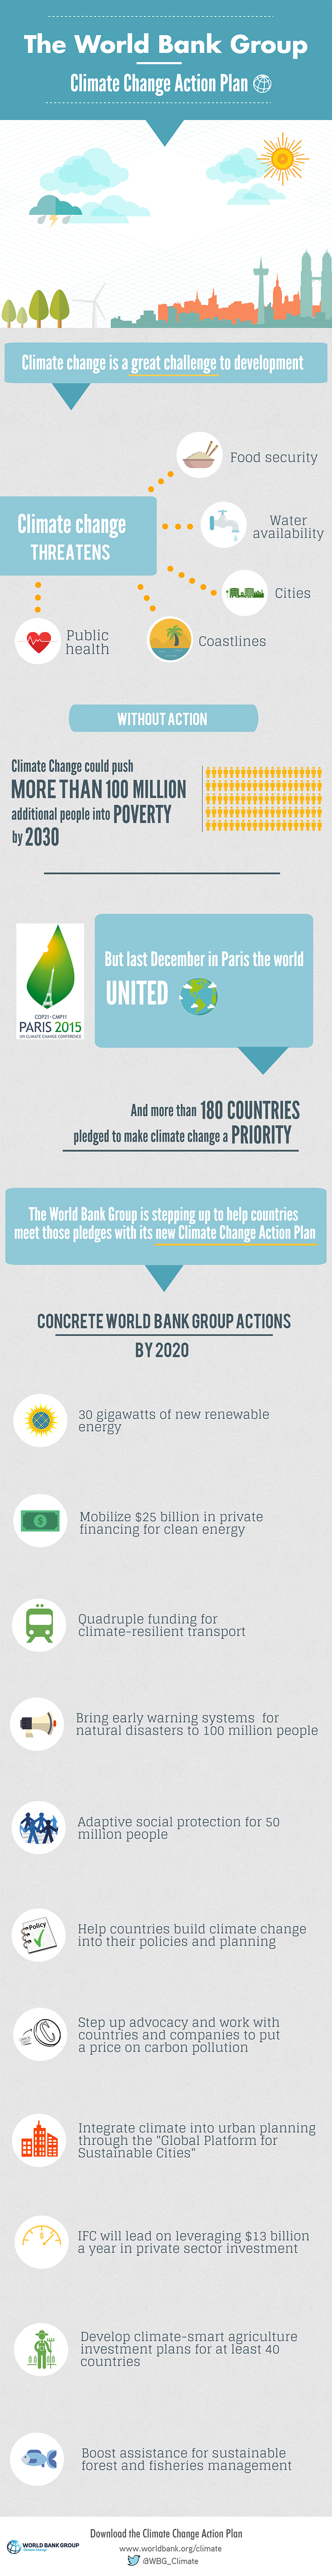 File:Climate-Action-Plan-World Bank-2016.png